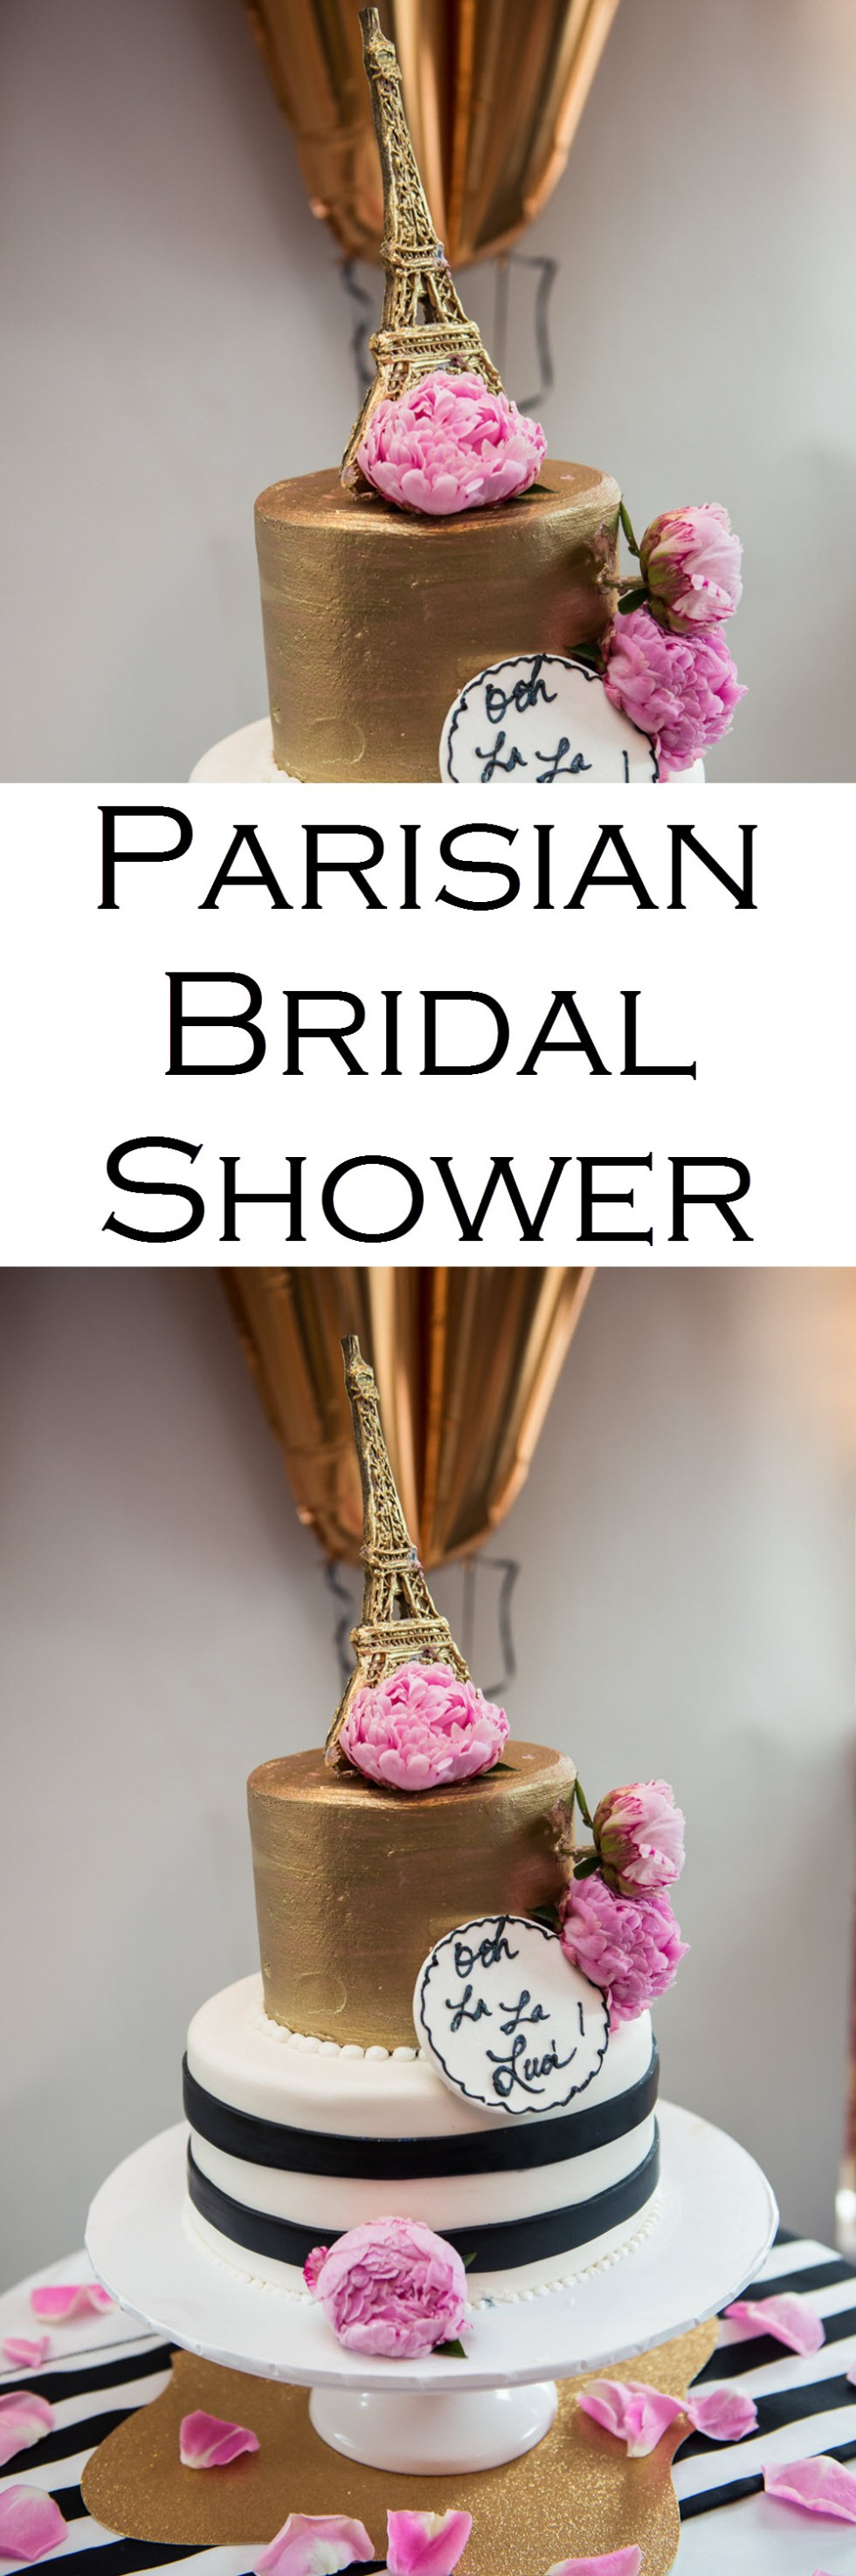 Paris-Themed Bridal Shower Photos, Games, + Decor Ideas